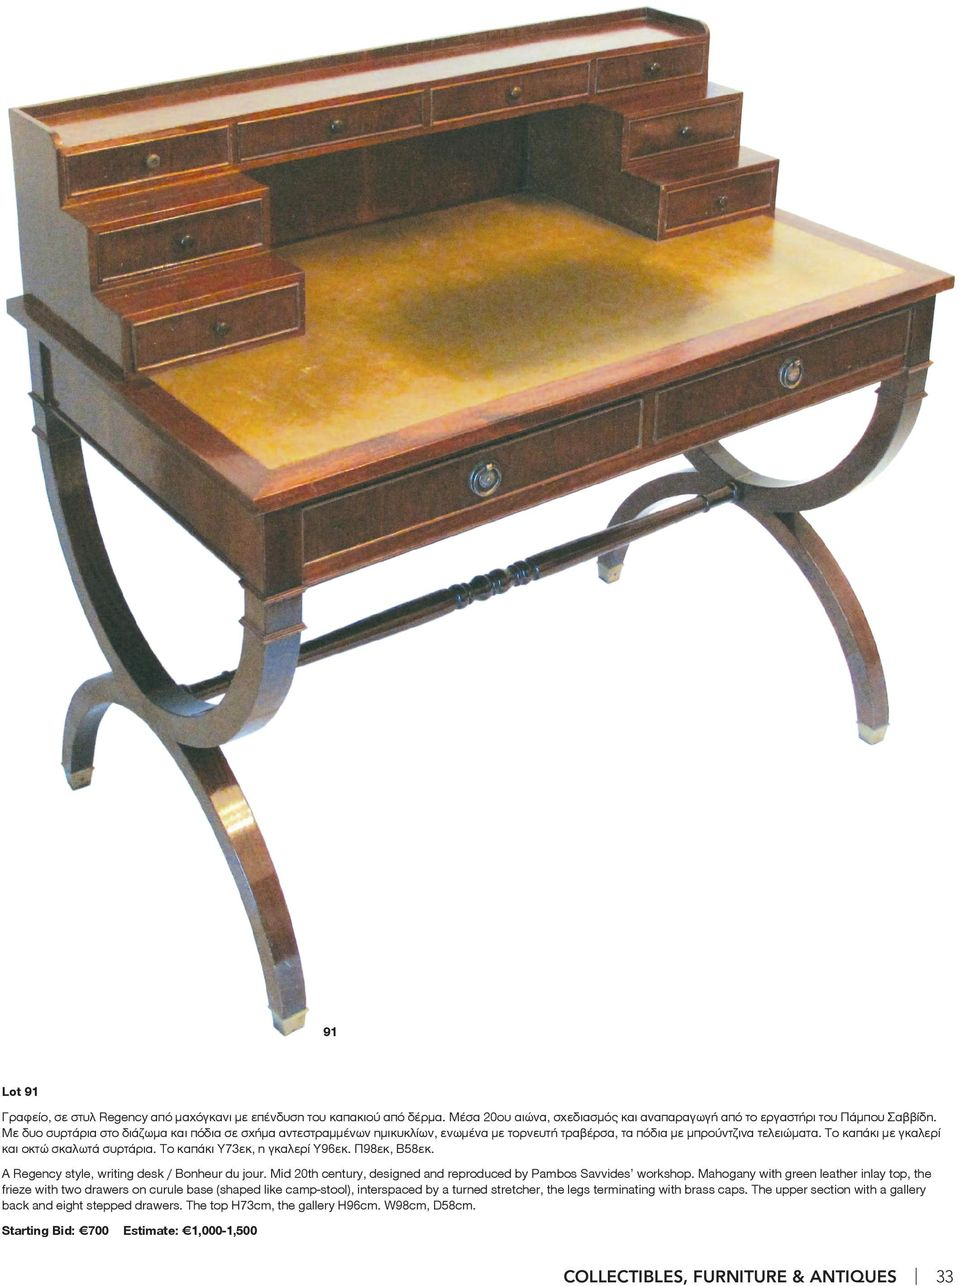 Το καπάκι Υ73εκ, η γκαλερί Υ96εκ. Π98εκ, Β58εκ. A Regency style, writing desk / Bonheur du jour. Mid 20th century, designed and reproduced by Pambos Savvides workshop.